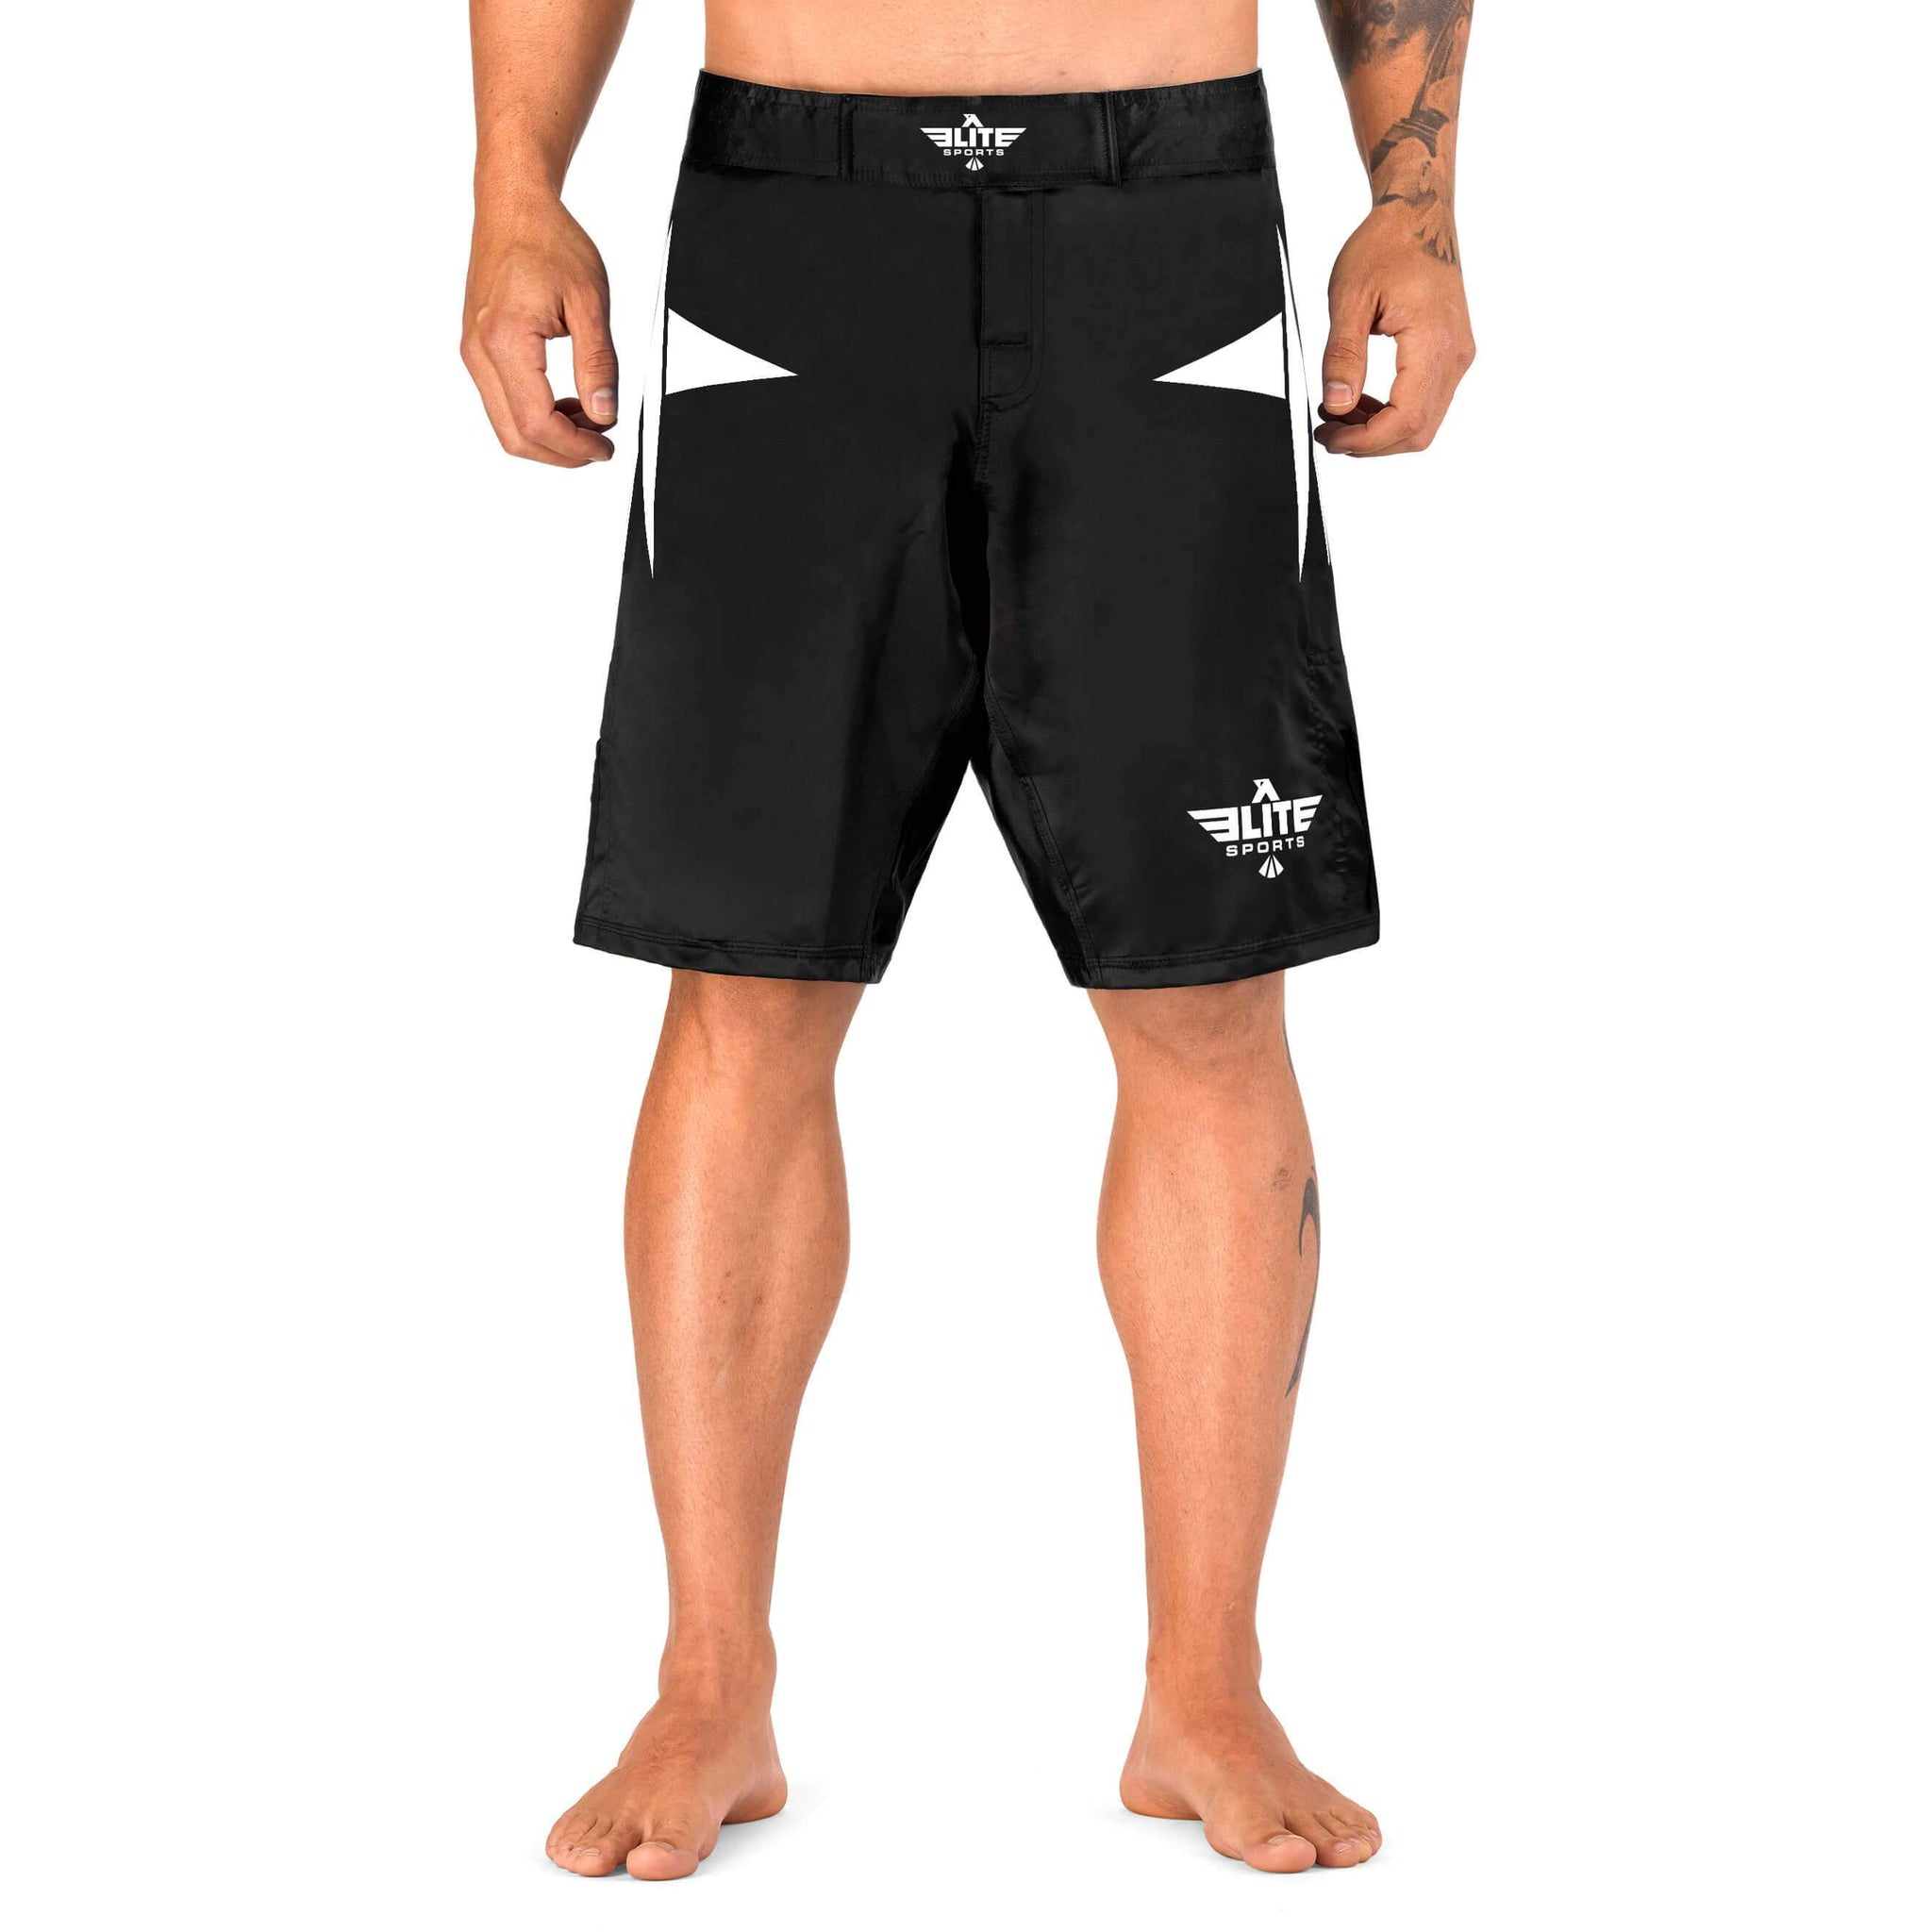 Load image into Gallery viewer, Elite Sports Star Series Sublimation Black/White Wrestling Shorts